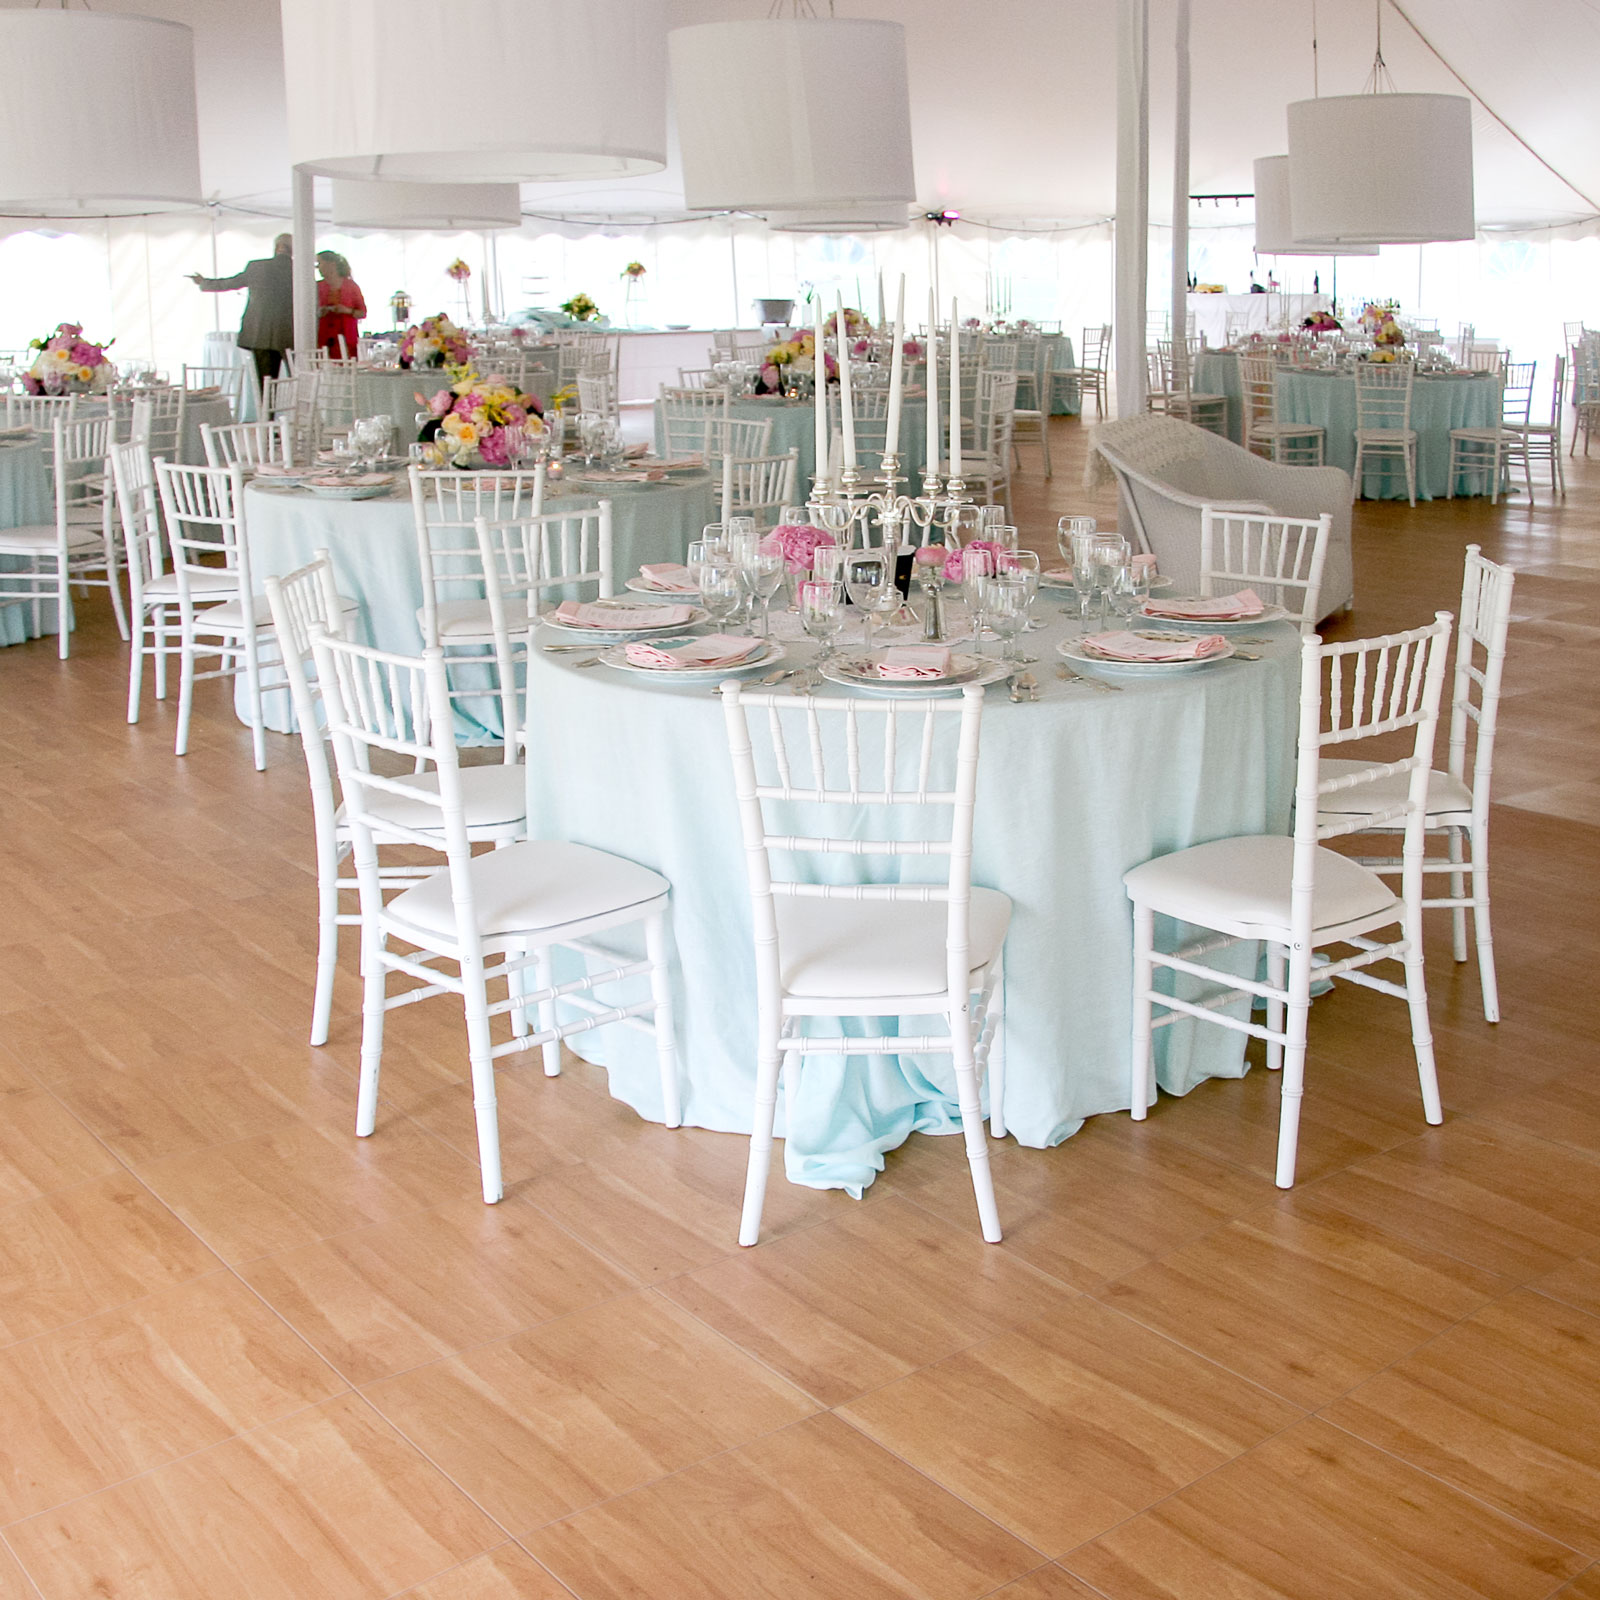 Maple Flooring at a tent event